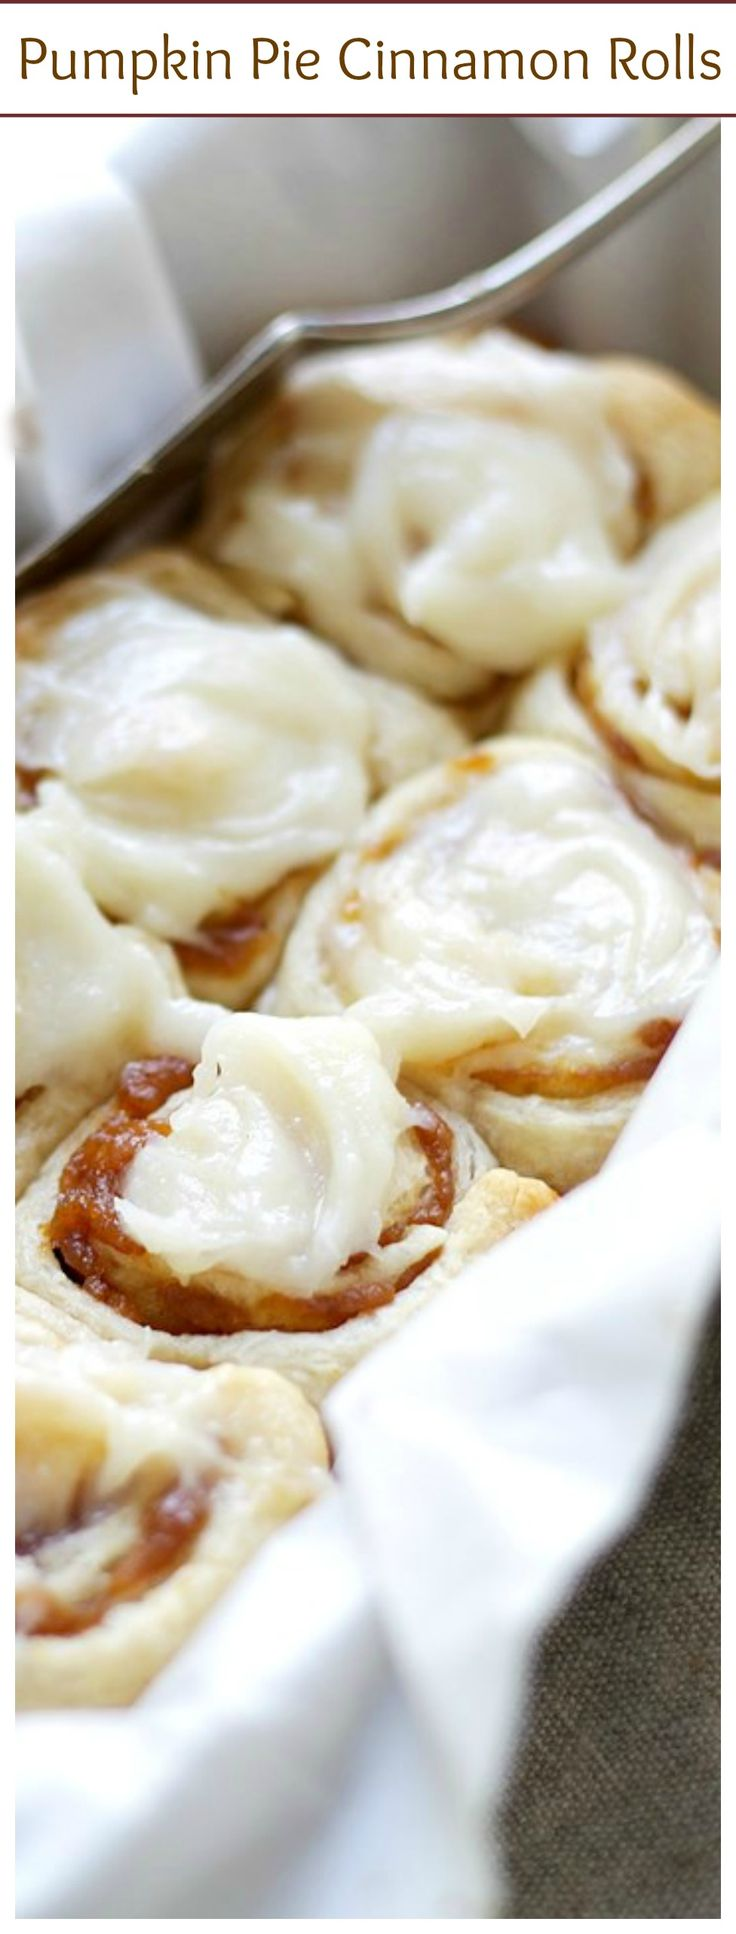 Pumpkin Pie Cinnamon Rolls in 30-Minutes made with a delicious pumpkin filling and an incredible pumpkin pie spice cream cheese frosting! | #recipe #cinnamonrolls #pumpkin